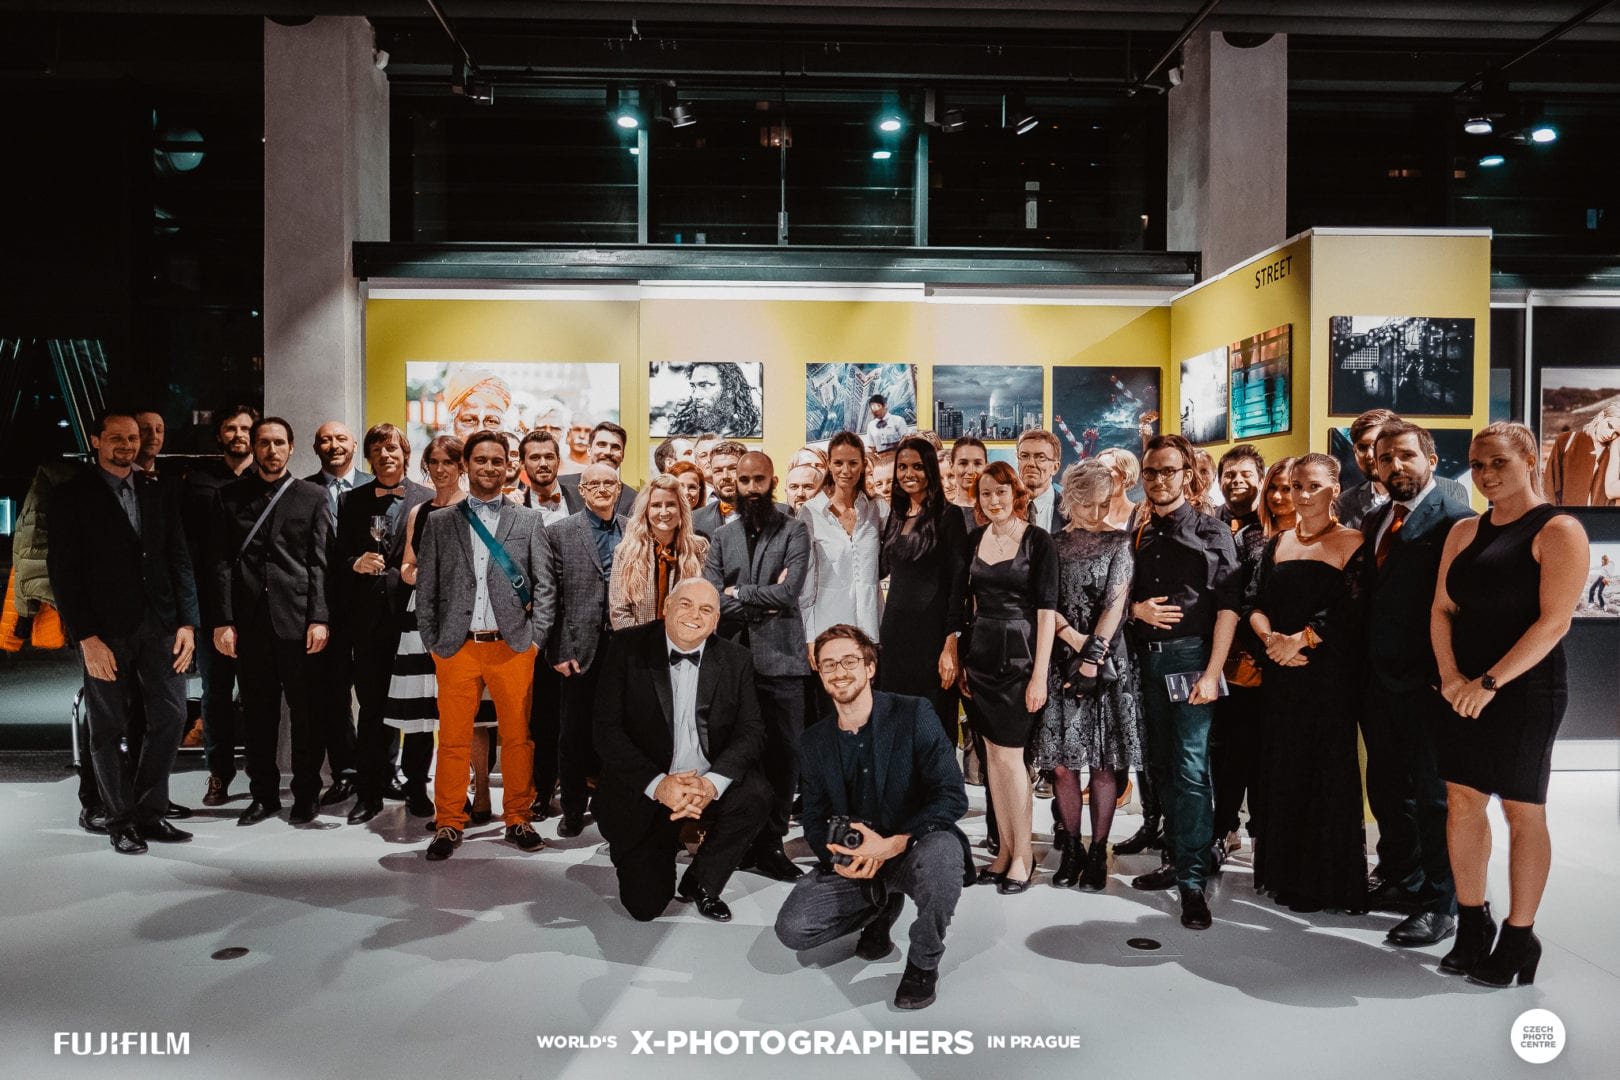 Family photo of myself with all the Fujifilm World X-Photographers attending to the event.